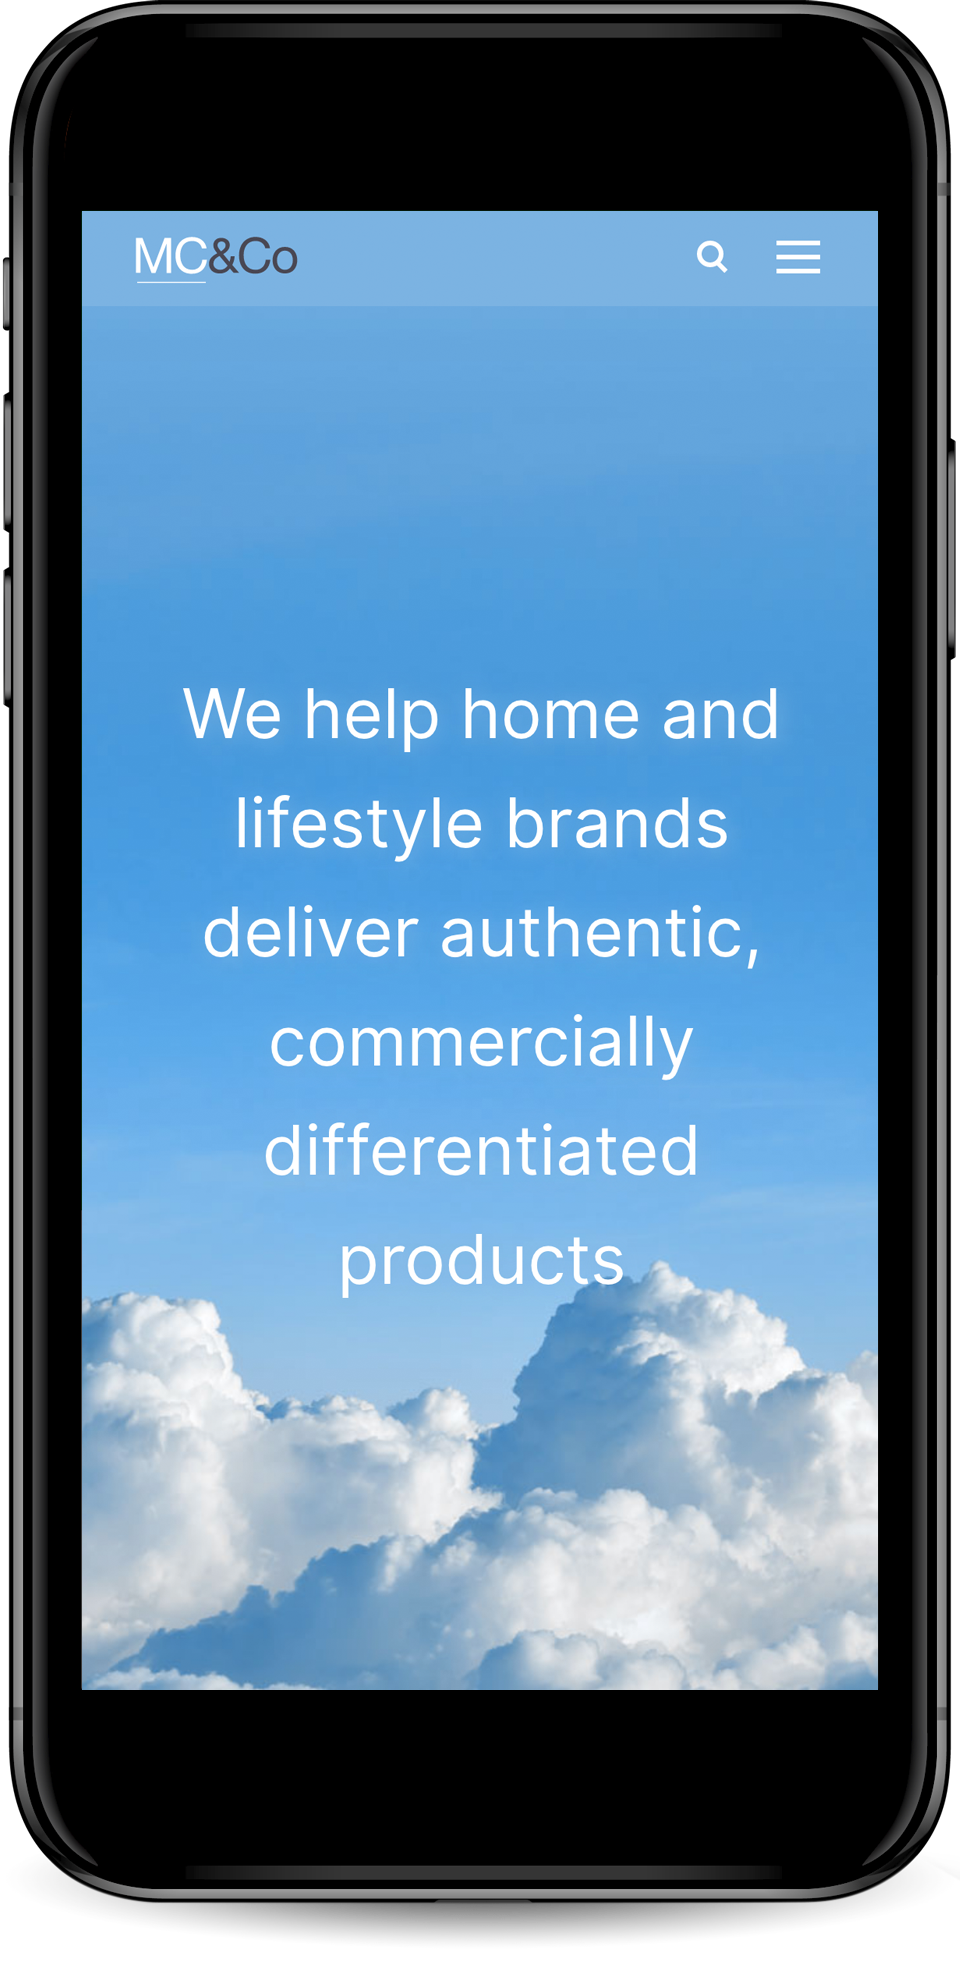 MC&Co home page mobile view